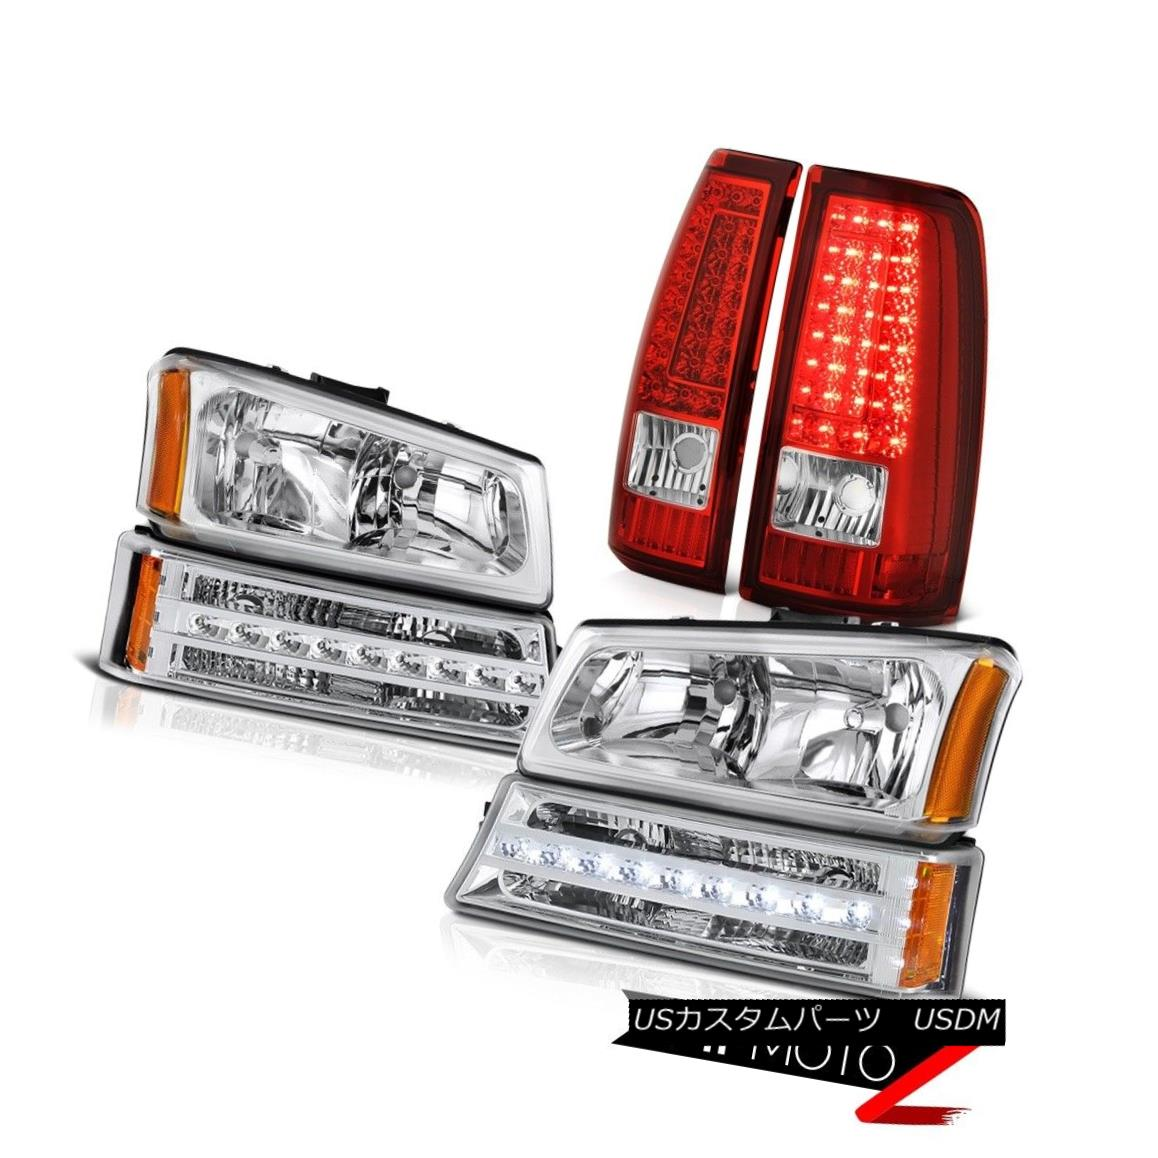 テールライト 03-06 Silverado 3500Hd Red Rear Brake Lights Bumper Lamp Headlamps